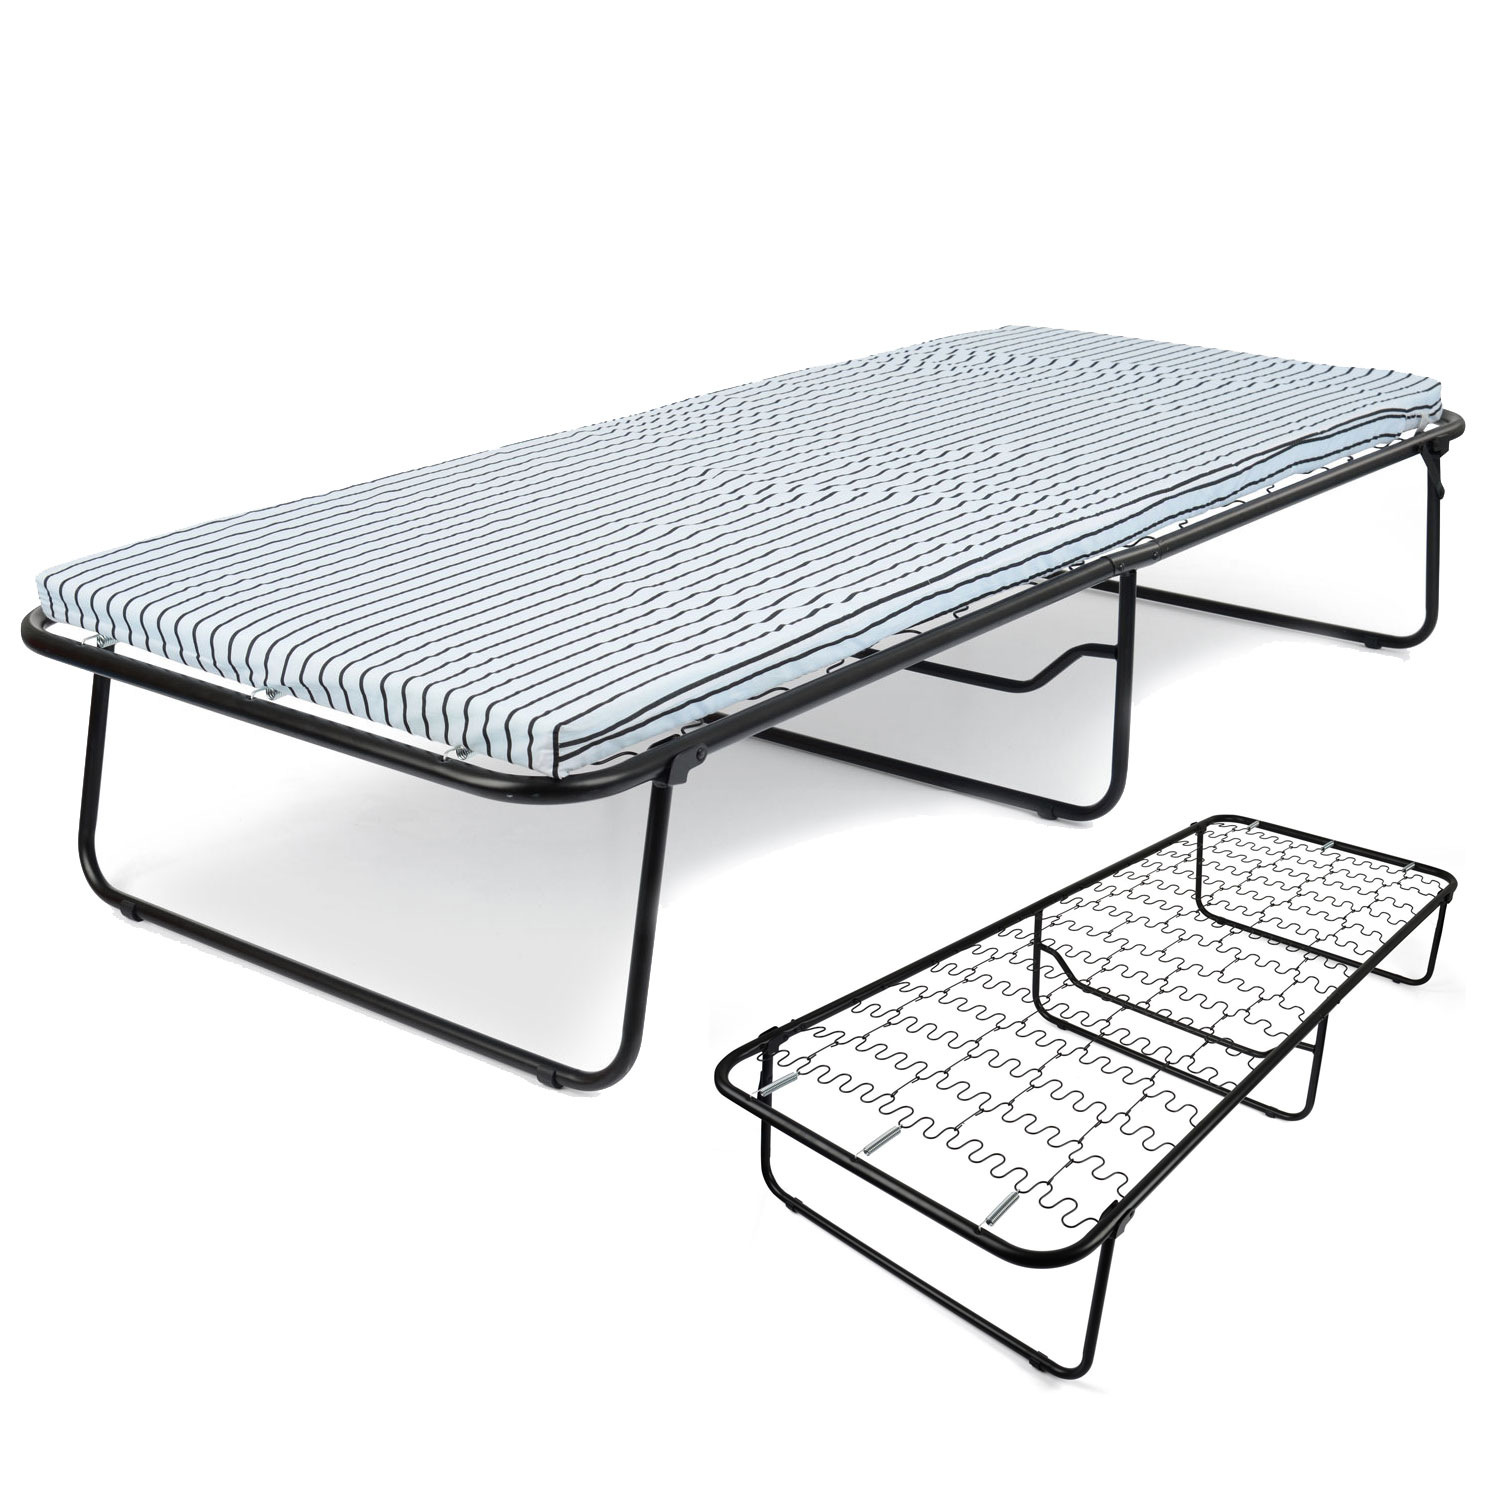 Image of Folding Single Guest Bed with Mattress